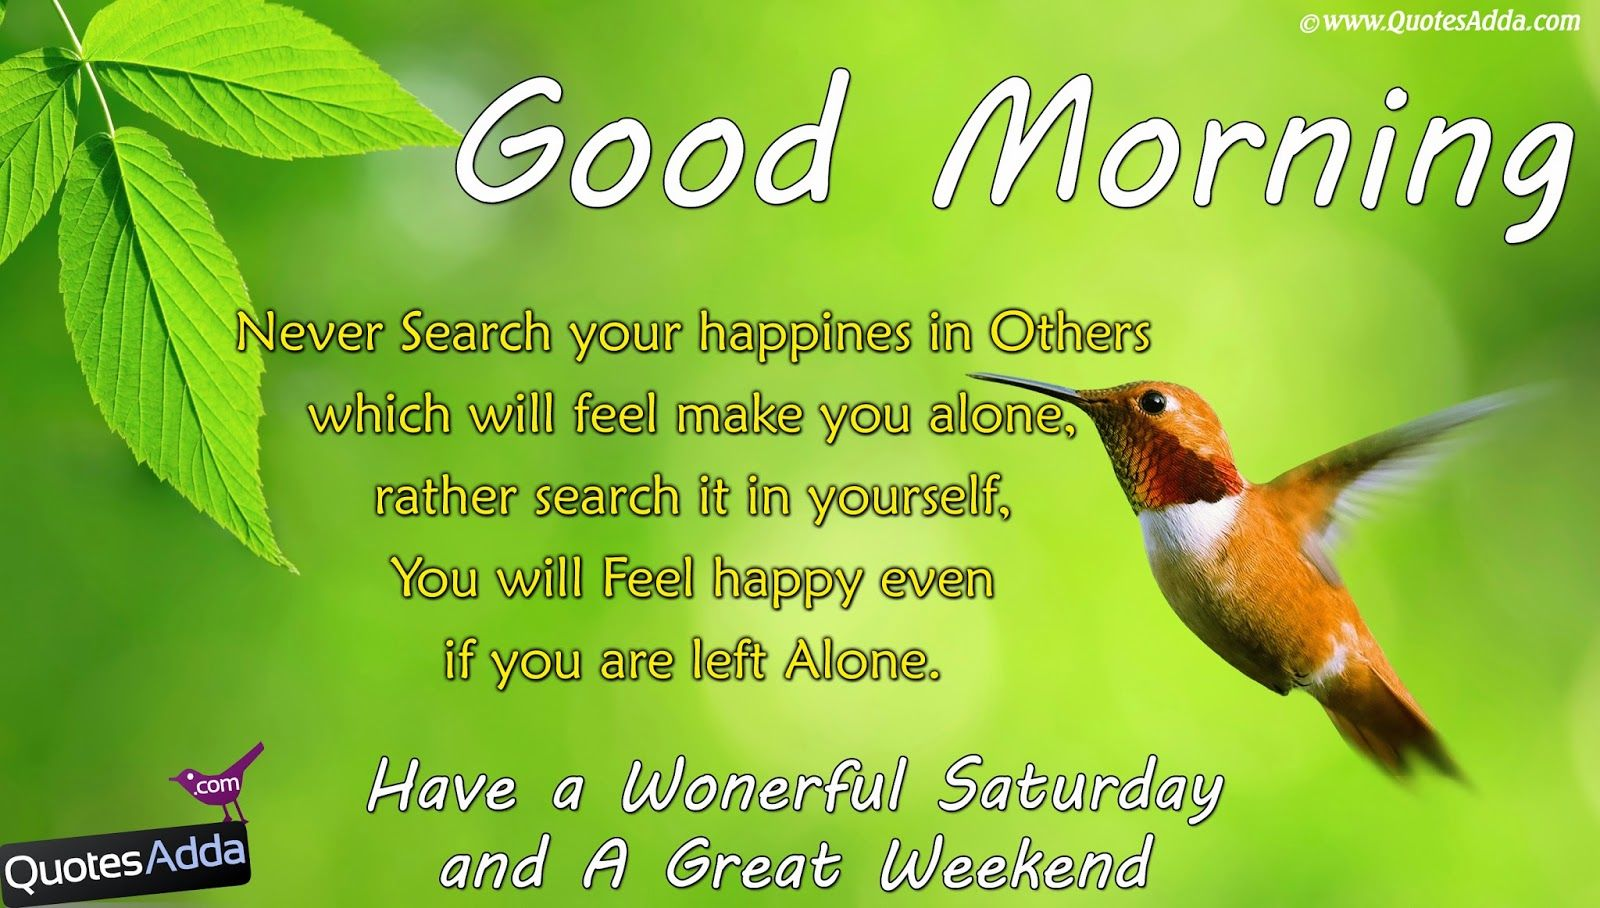 Good Morning Saturday Have A Wonderful Weekend : Good morning have a wonderful saturday and great